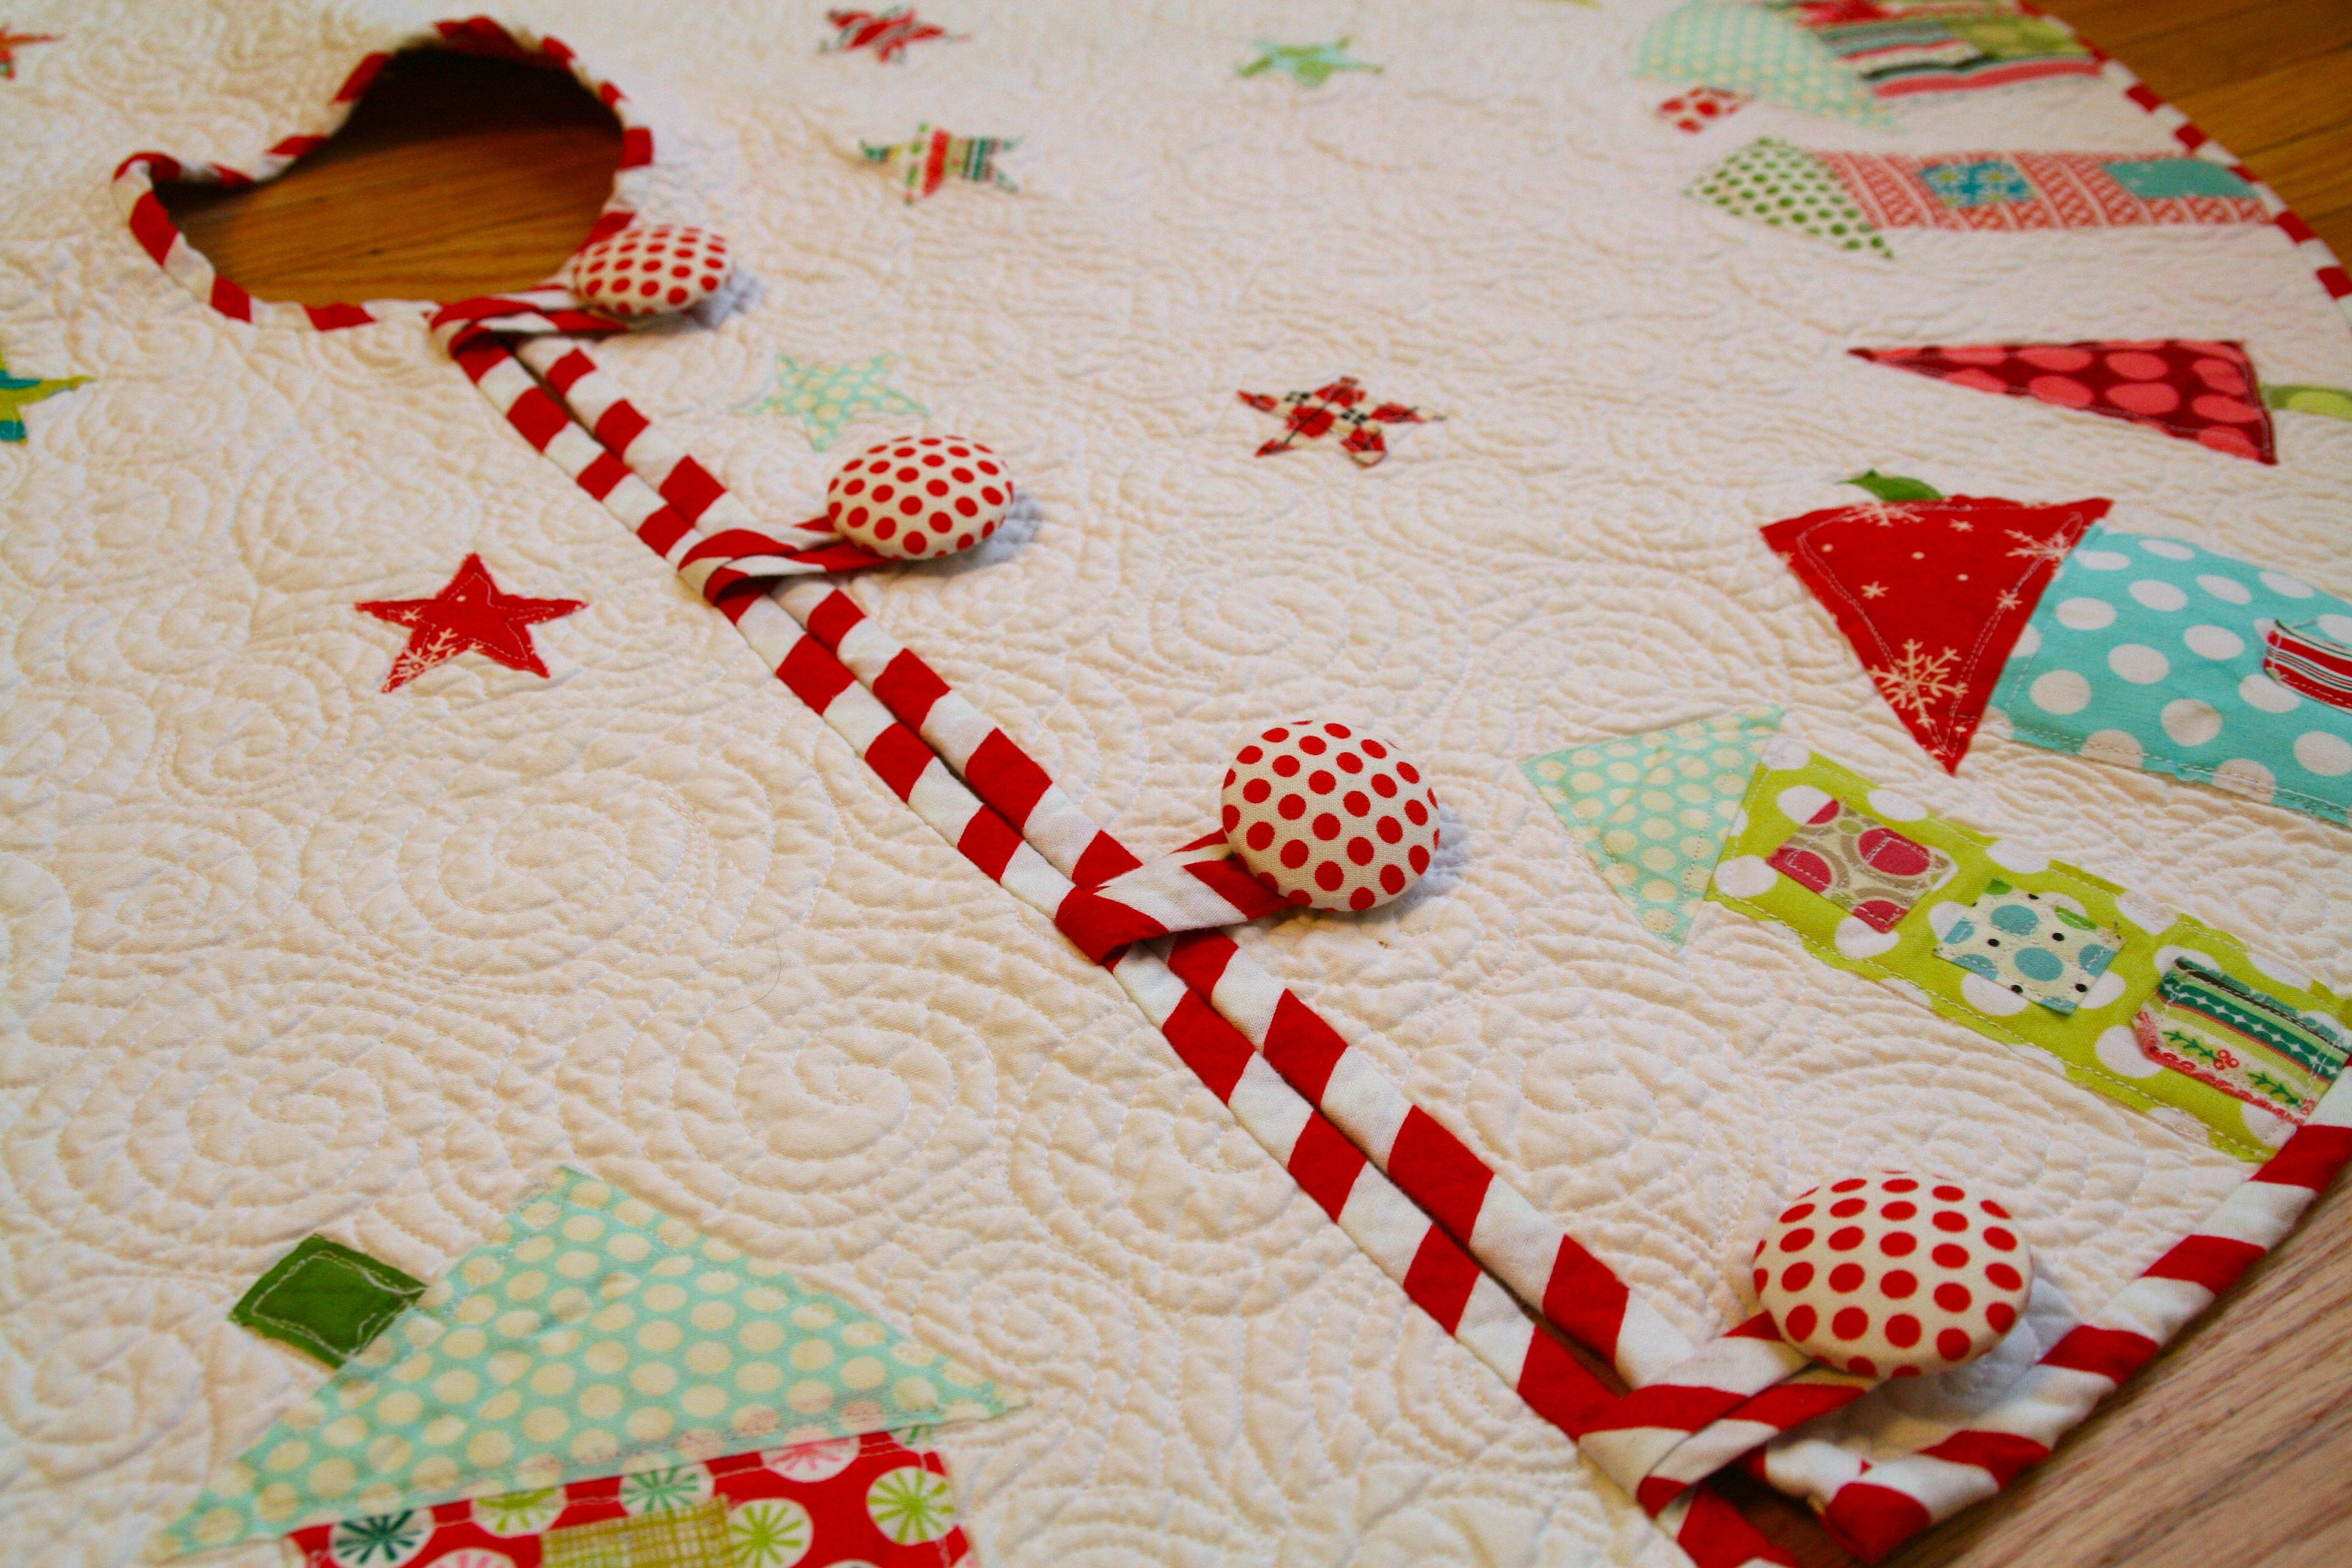 Christmas Tree Skirt Quilt Patterns Awesome Decorating Ideas